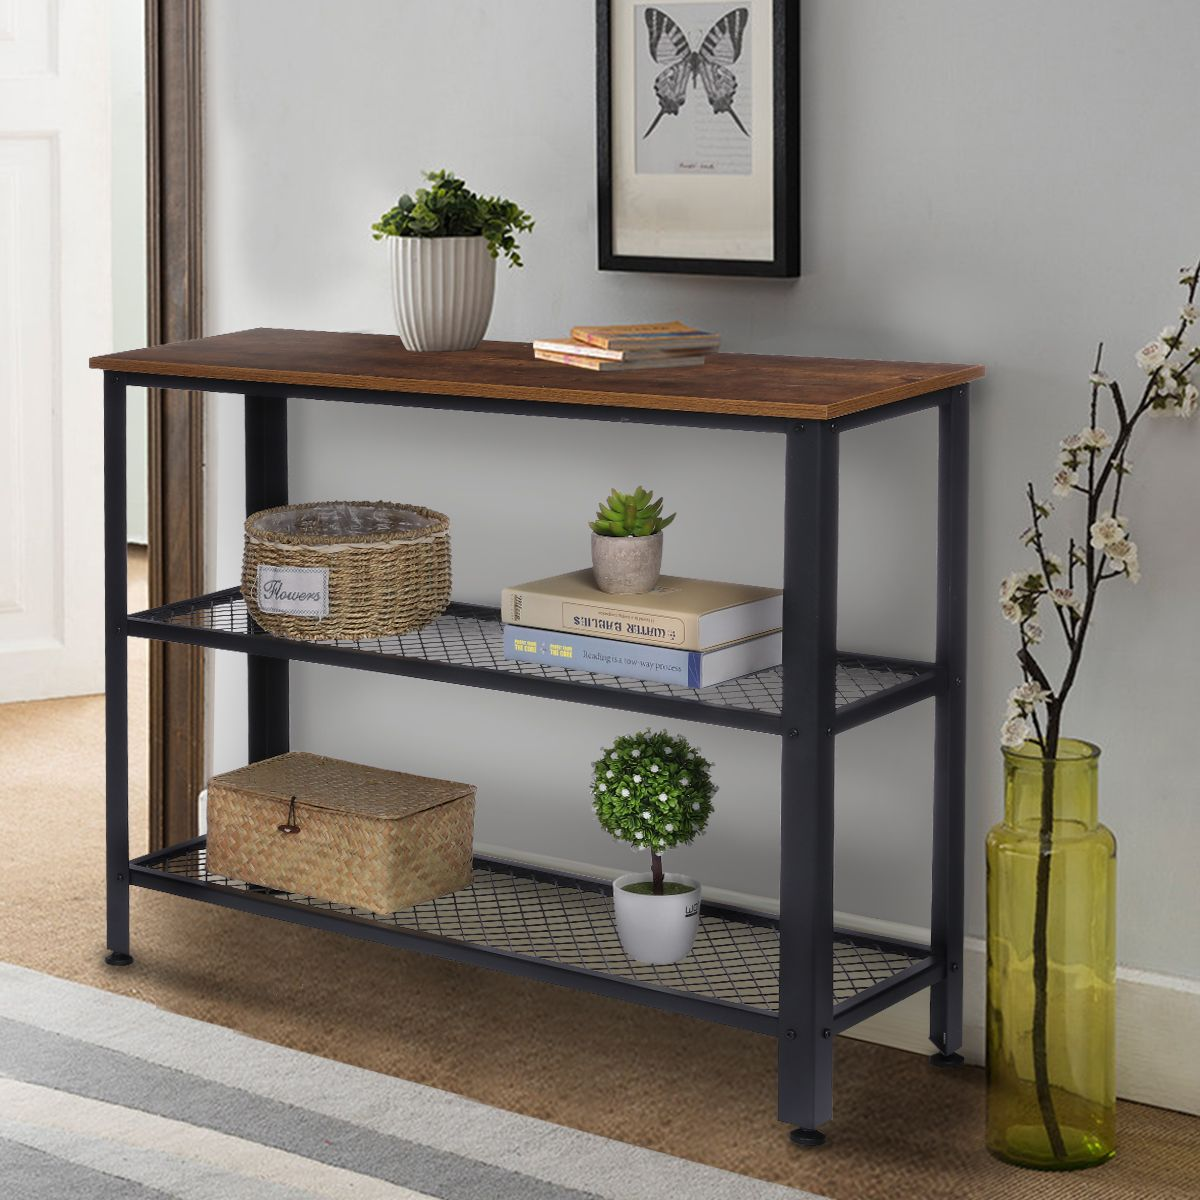 Kingso Console Table With Storage Shelves For Entryway Hallway Sofa Side Tables Living Room Bedroom Com In 2021 Rustic - Side Table With Storage Shelves